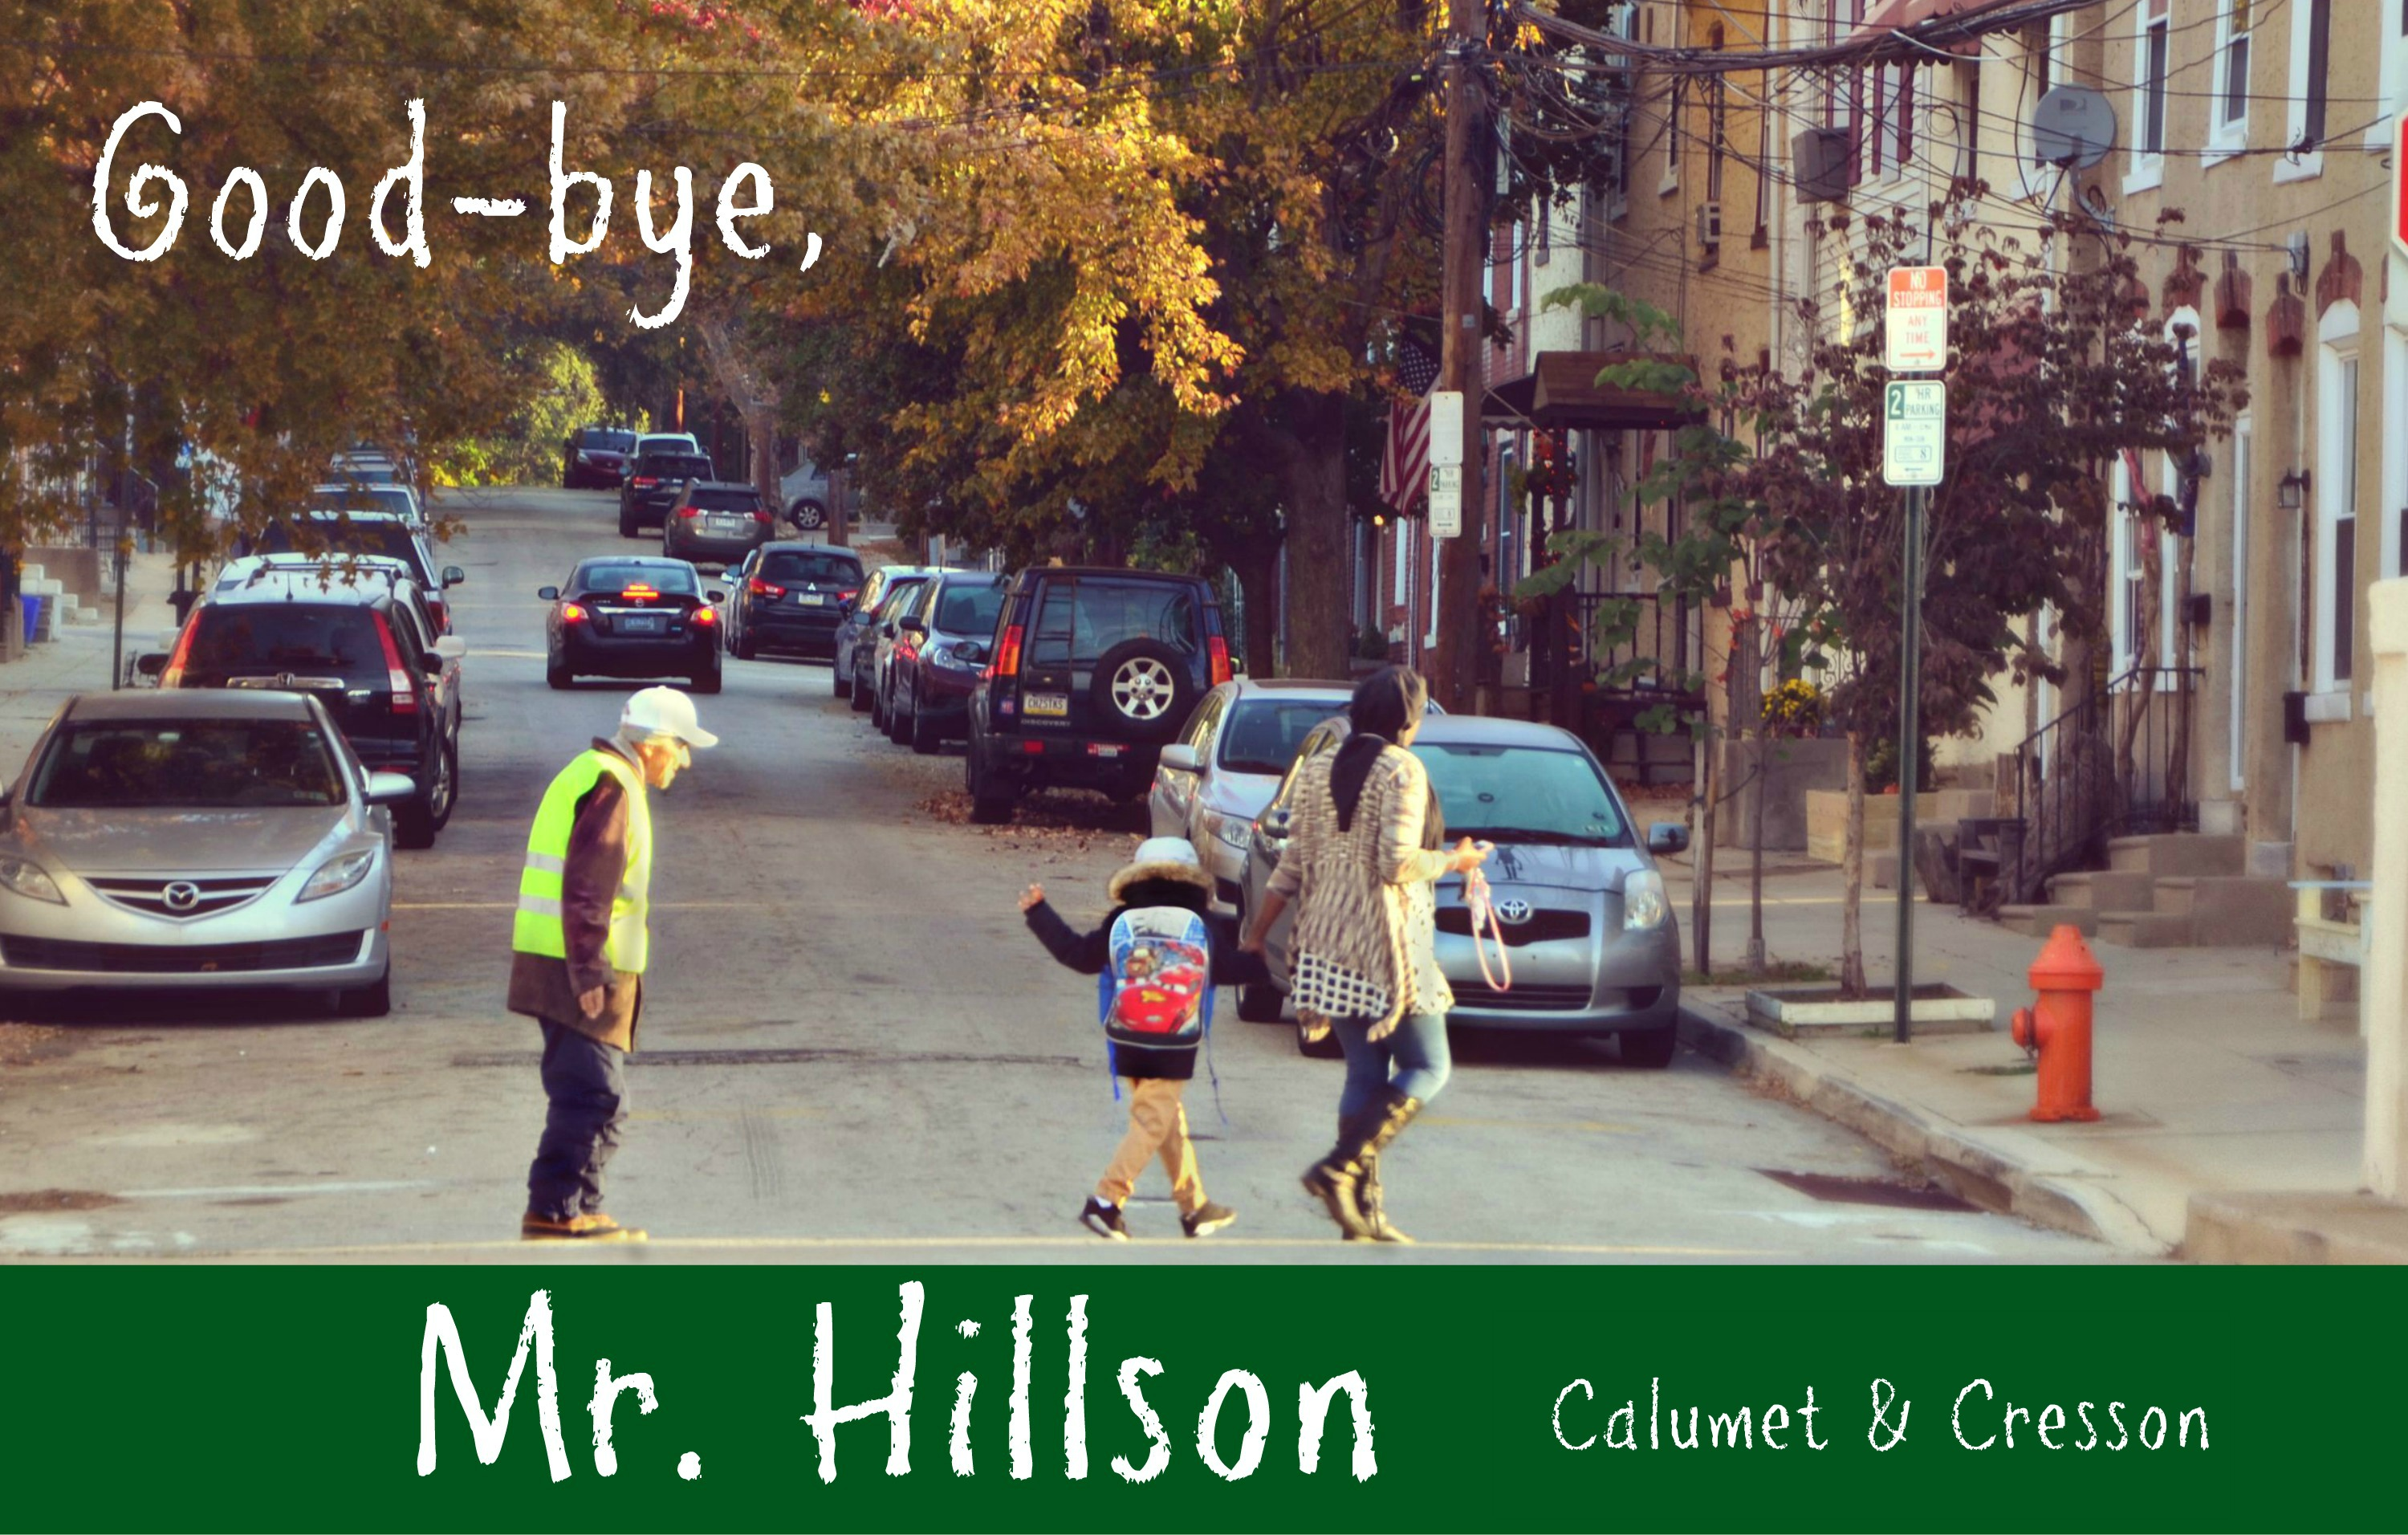 EastFallsLocal resize Mr Hillson crosses street kid waves calumet cresson txt